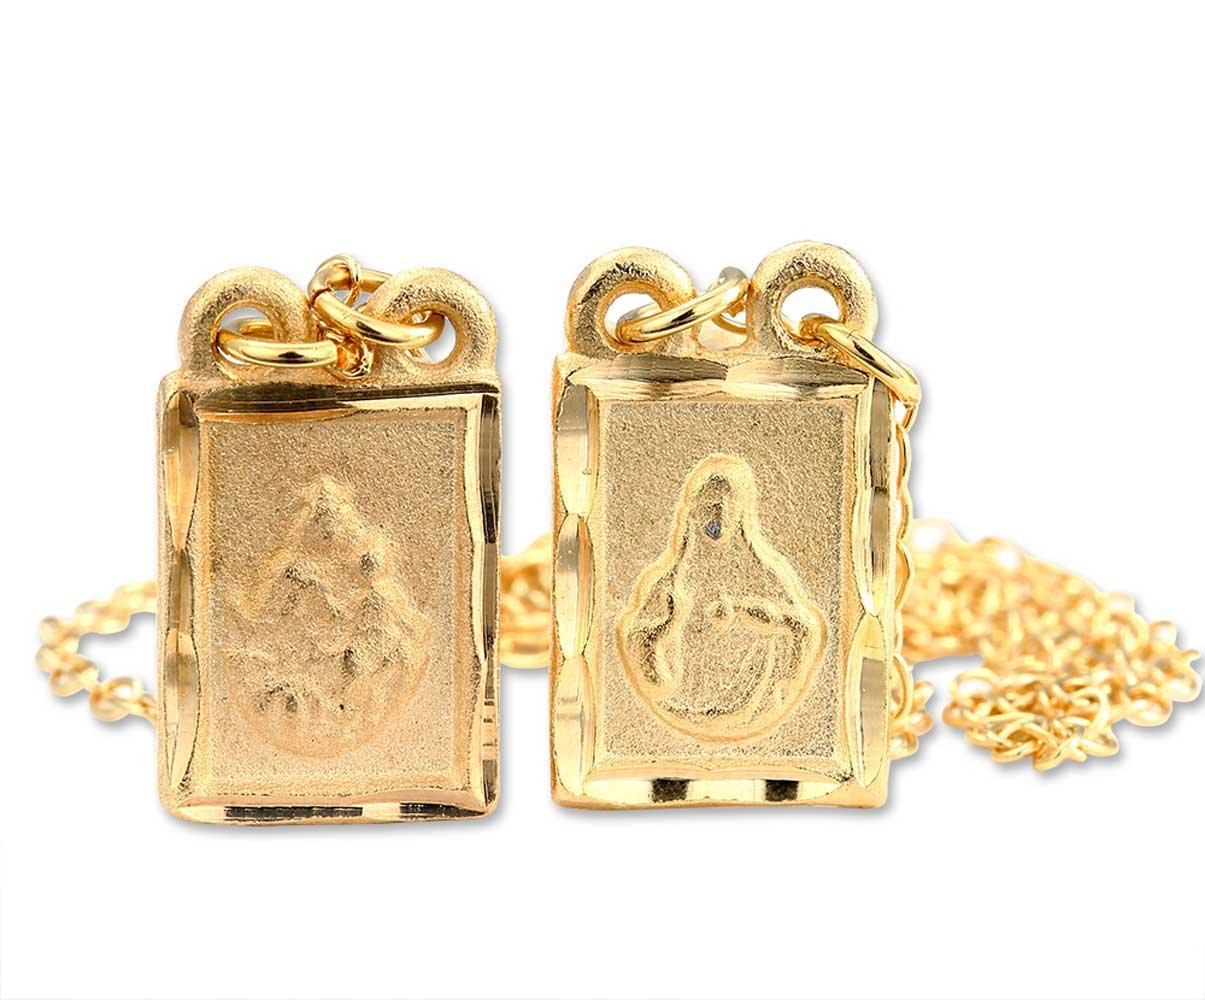 Catholica Shop Gold Plated Engraved Medals Square Scapular Necklace | Made in Brazil | 13 inch